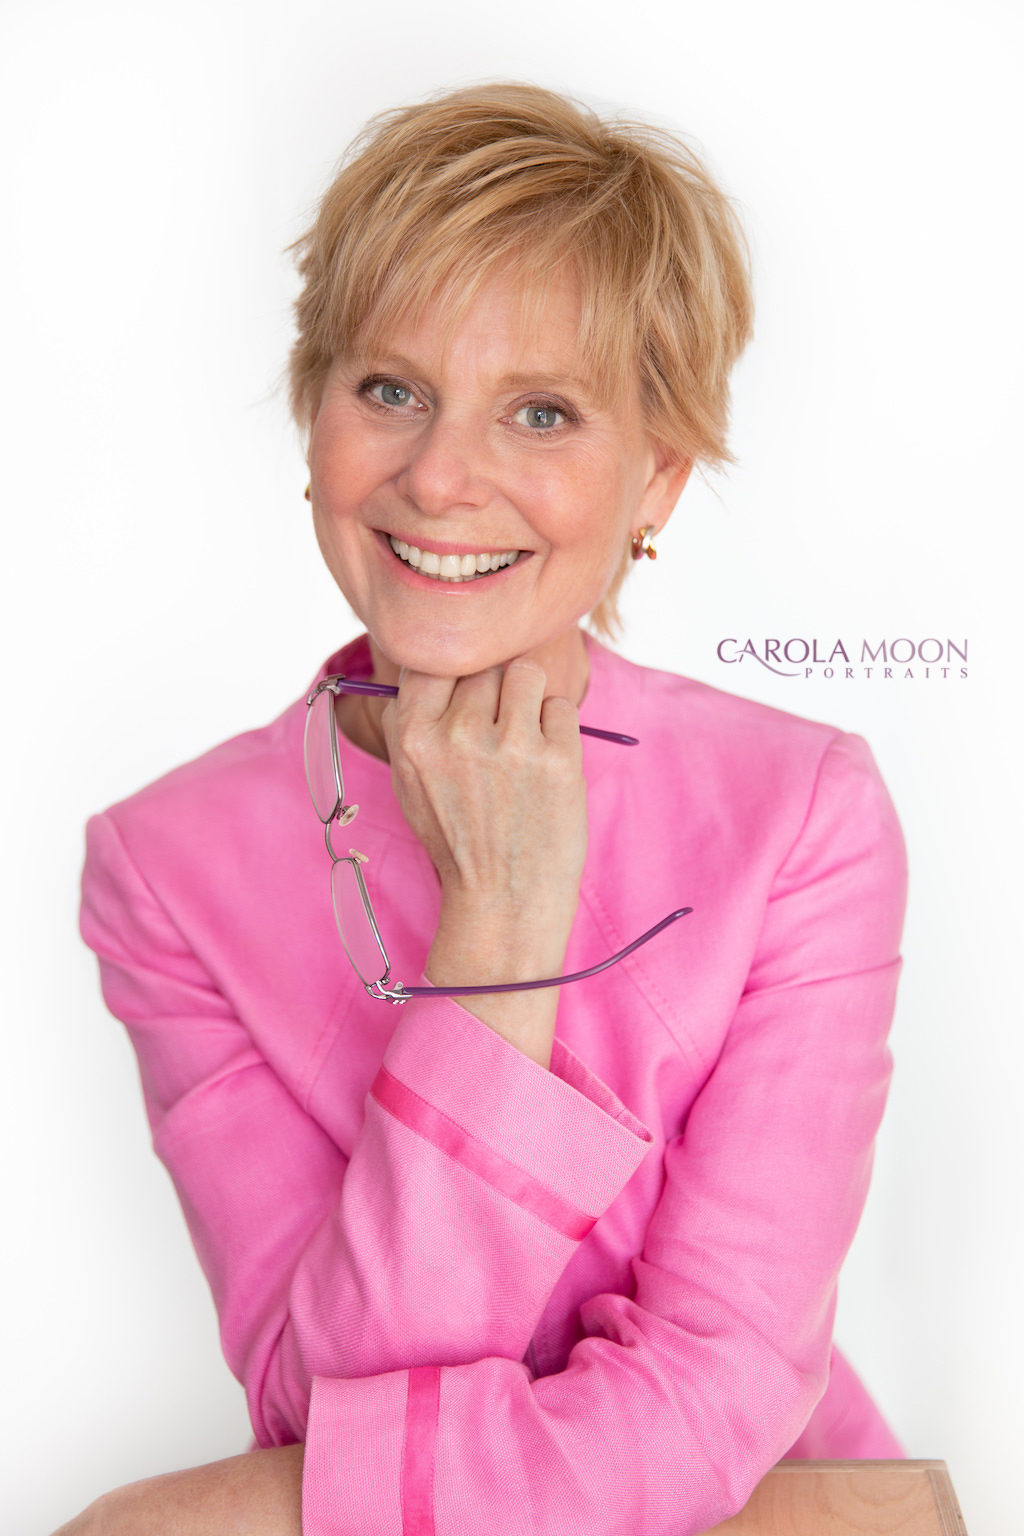 Jenny Robinson Personal Brand Photography & Publicity Images - Carola Moon Portraits.jpg